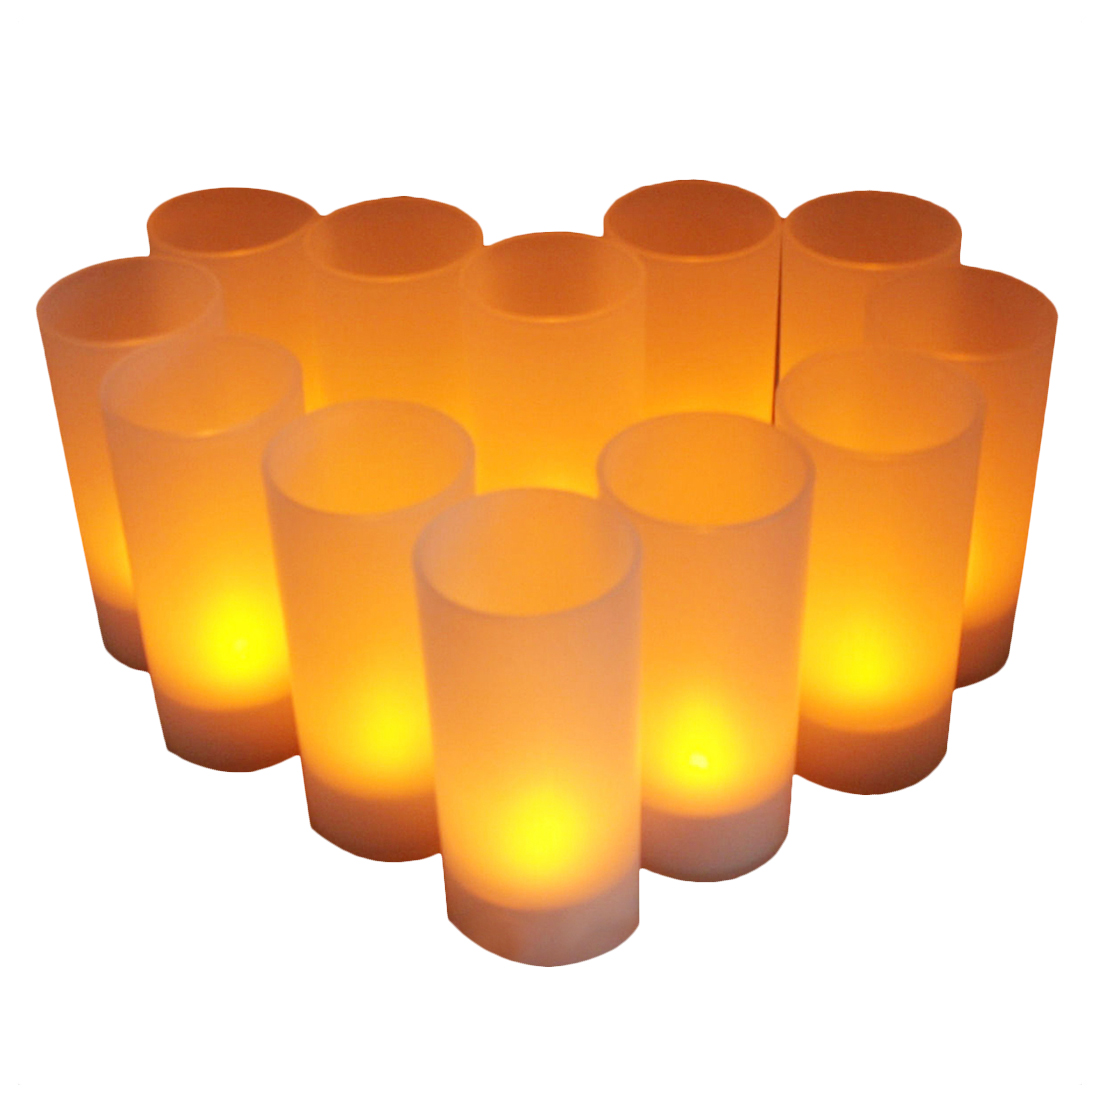 12pcs LED Tea Light Flameless Rechargeable LED Tea Light Flickering Amber Tealights Candles US Plug Rechargeable Battery